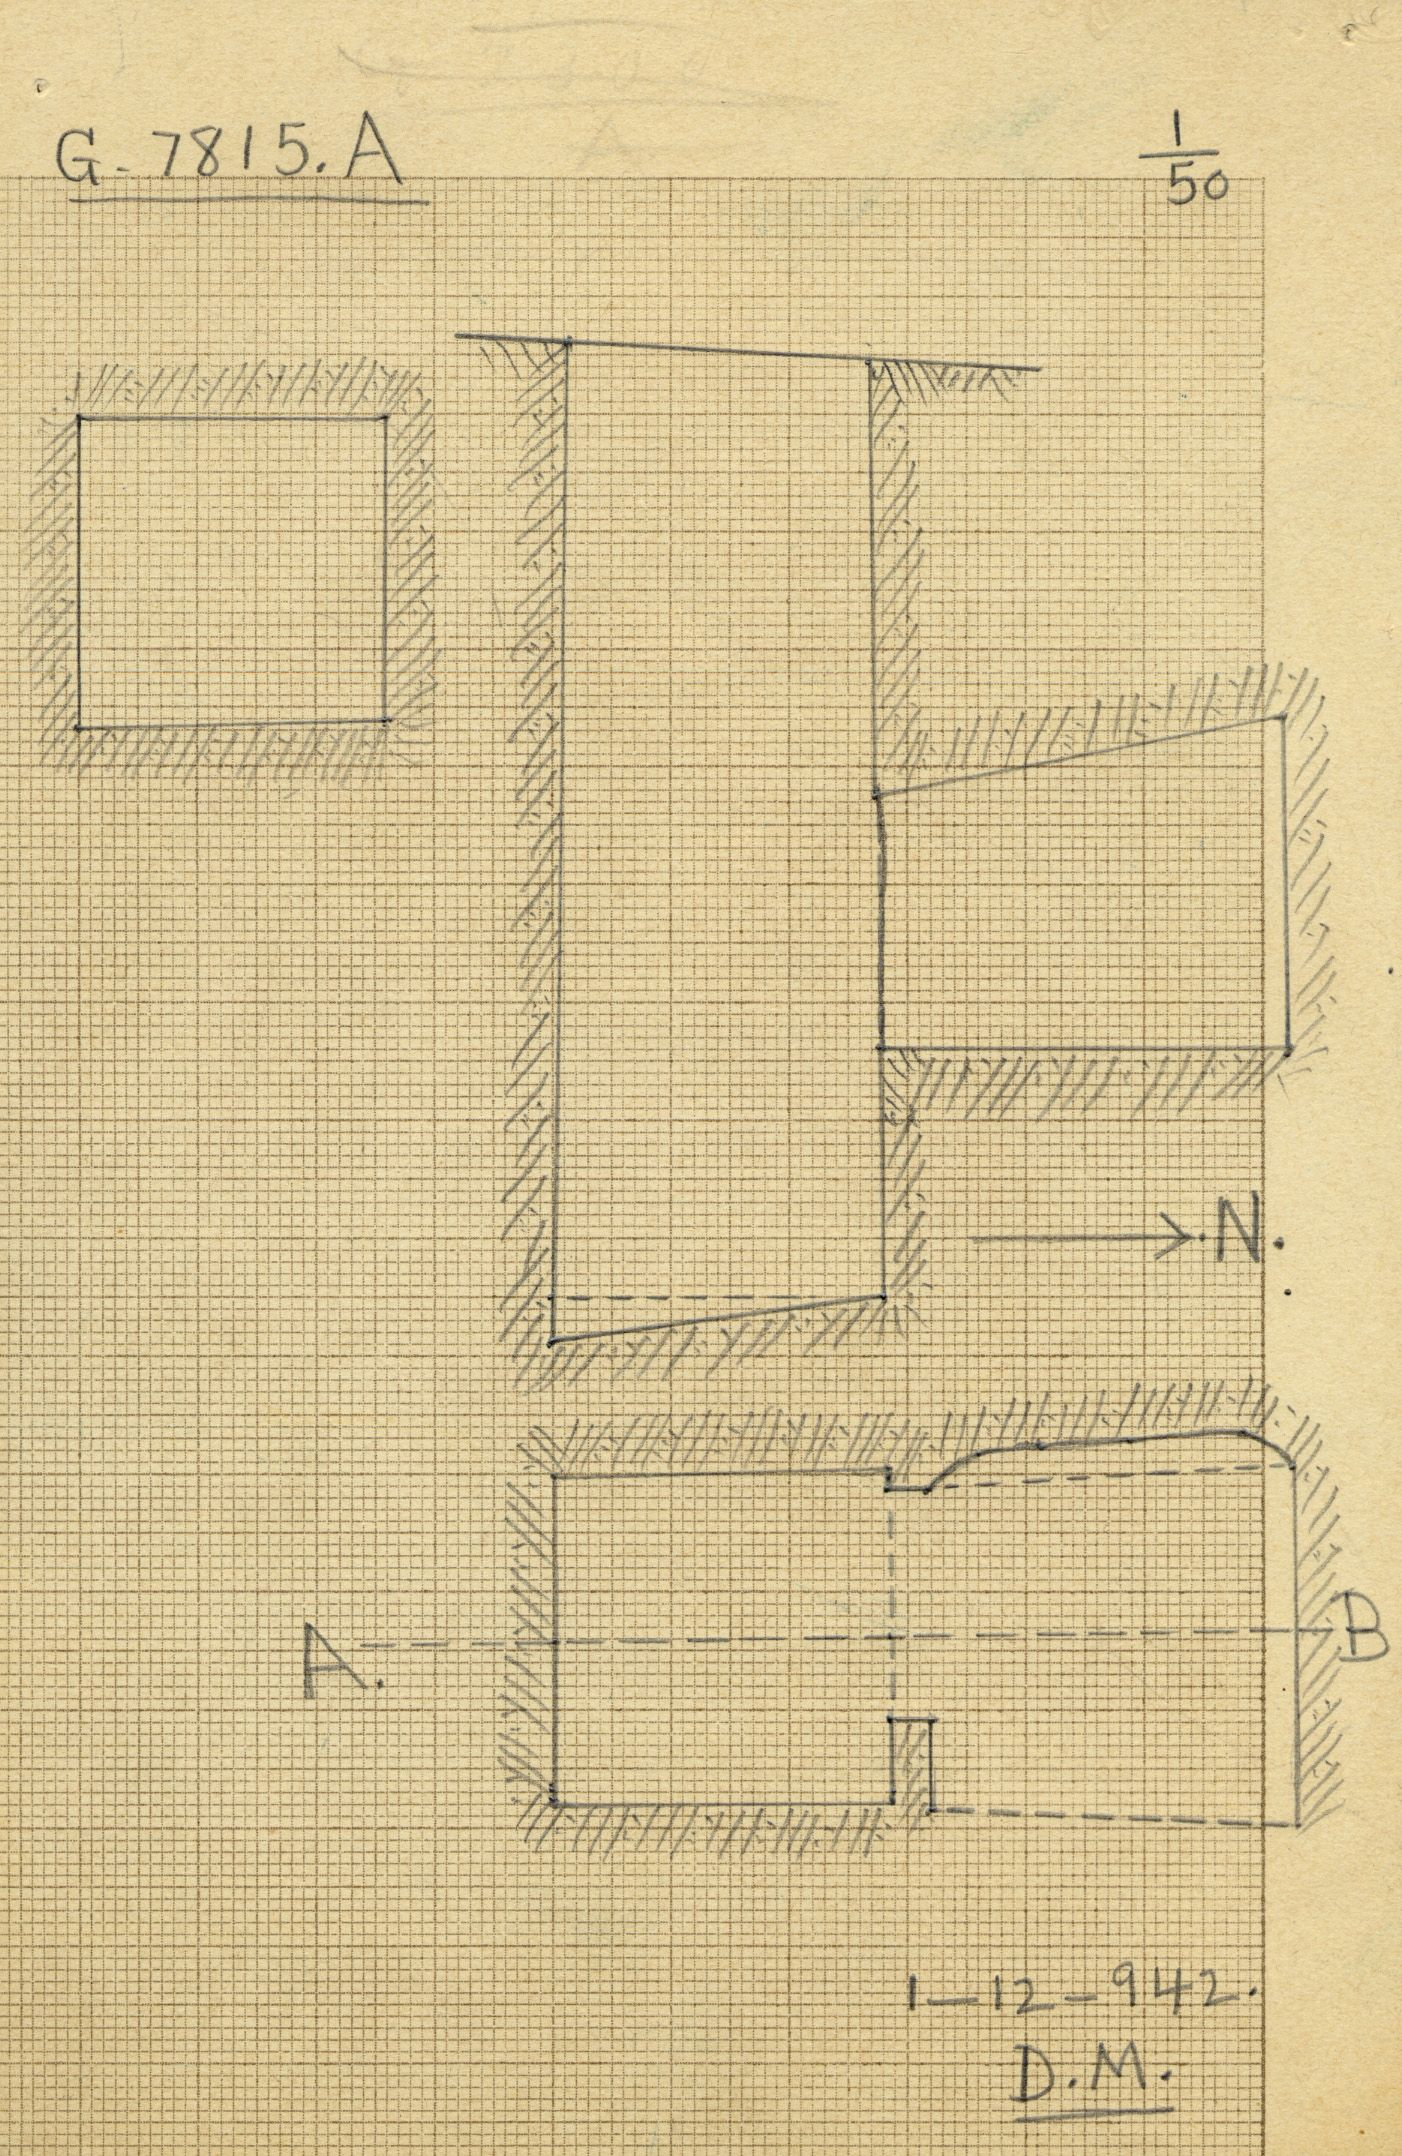 Maps and plans: G 7815, Shaft A